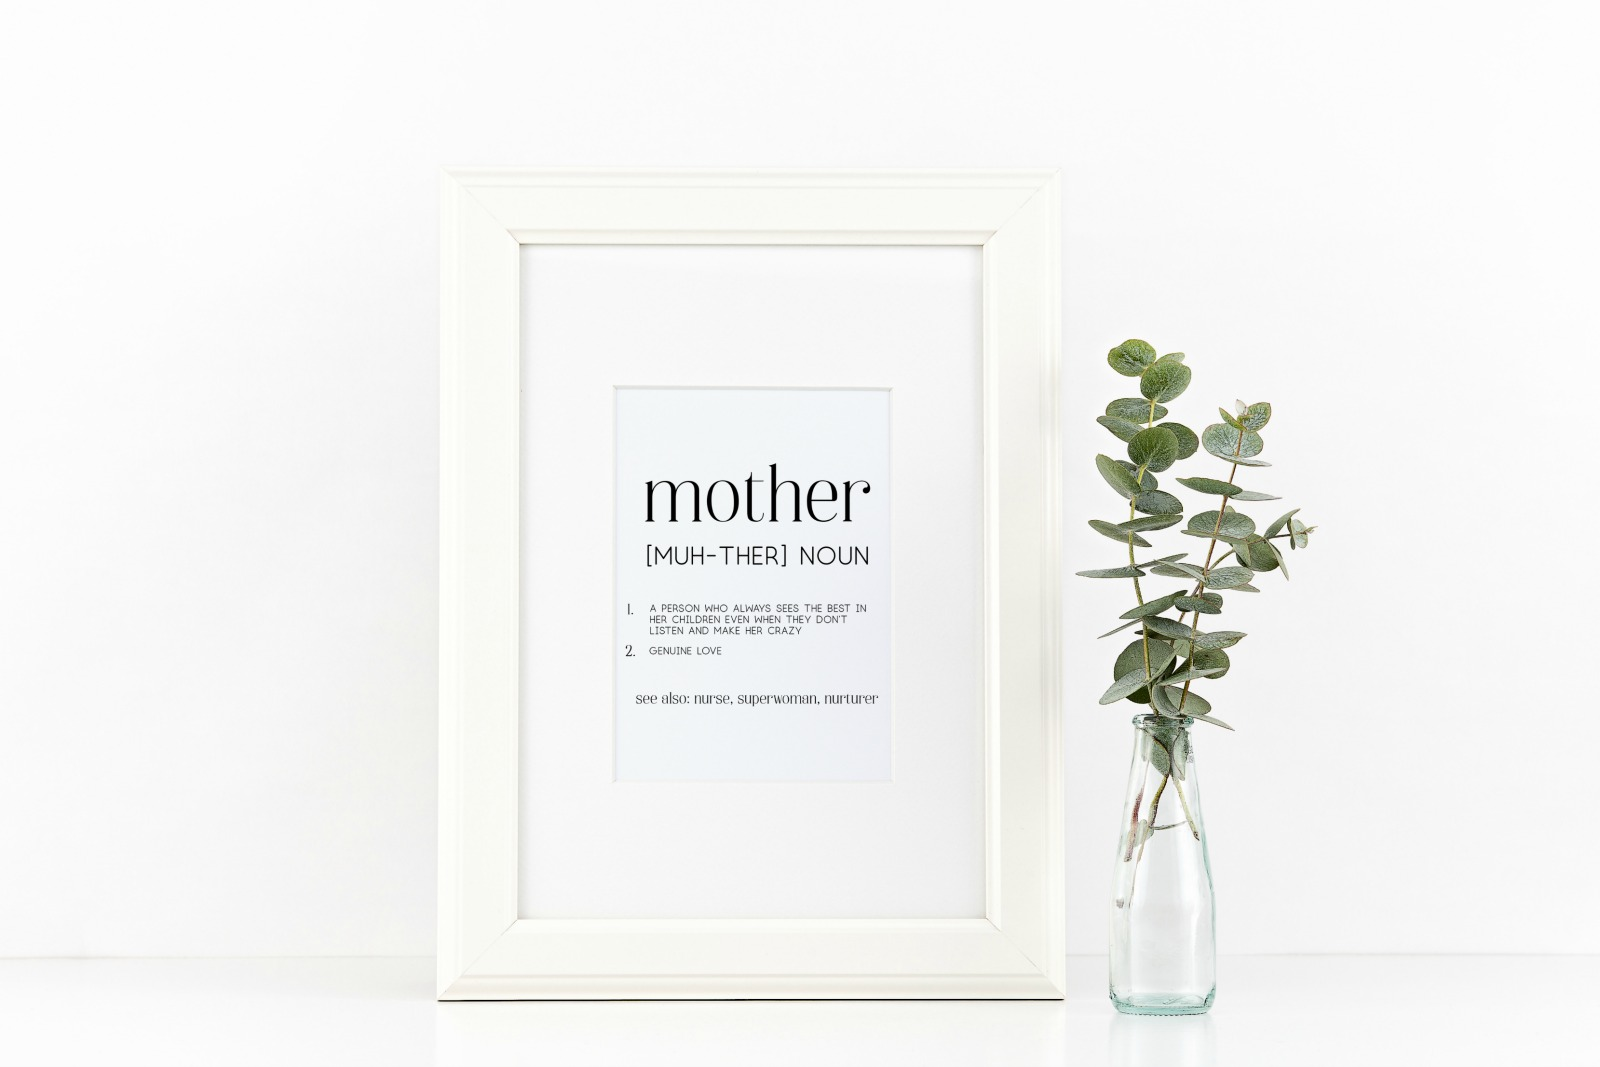 mother definition art